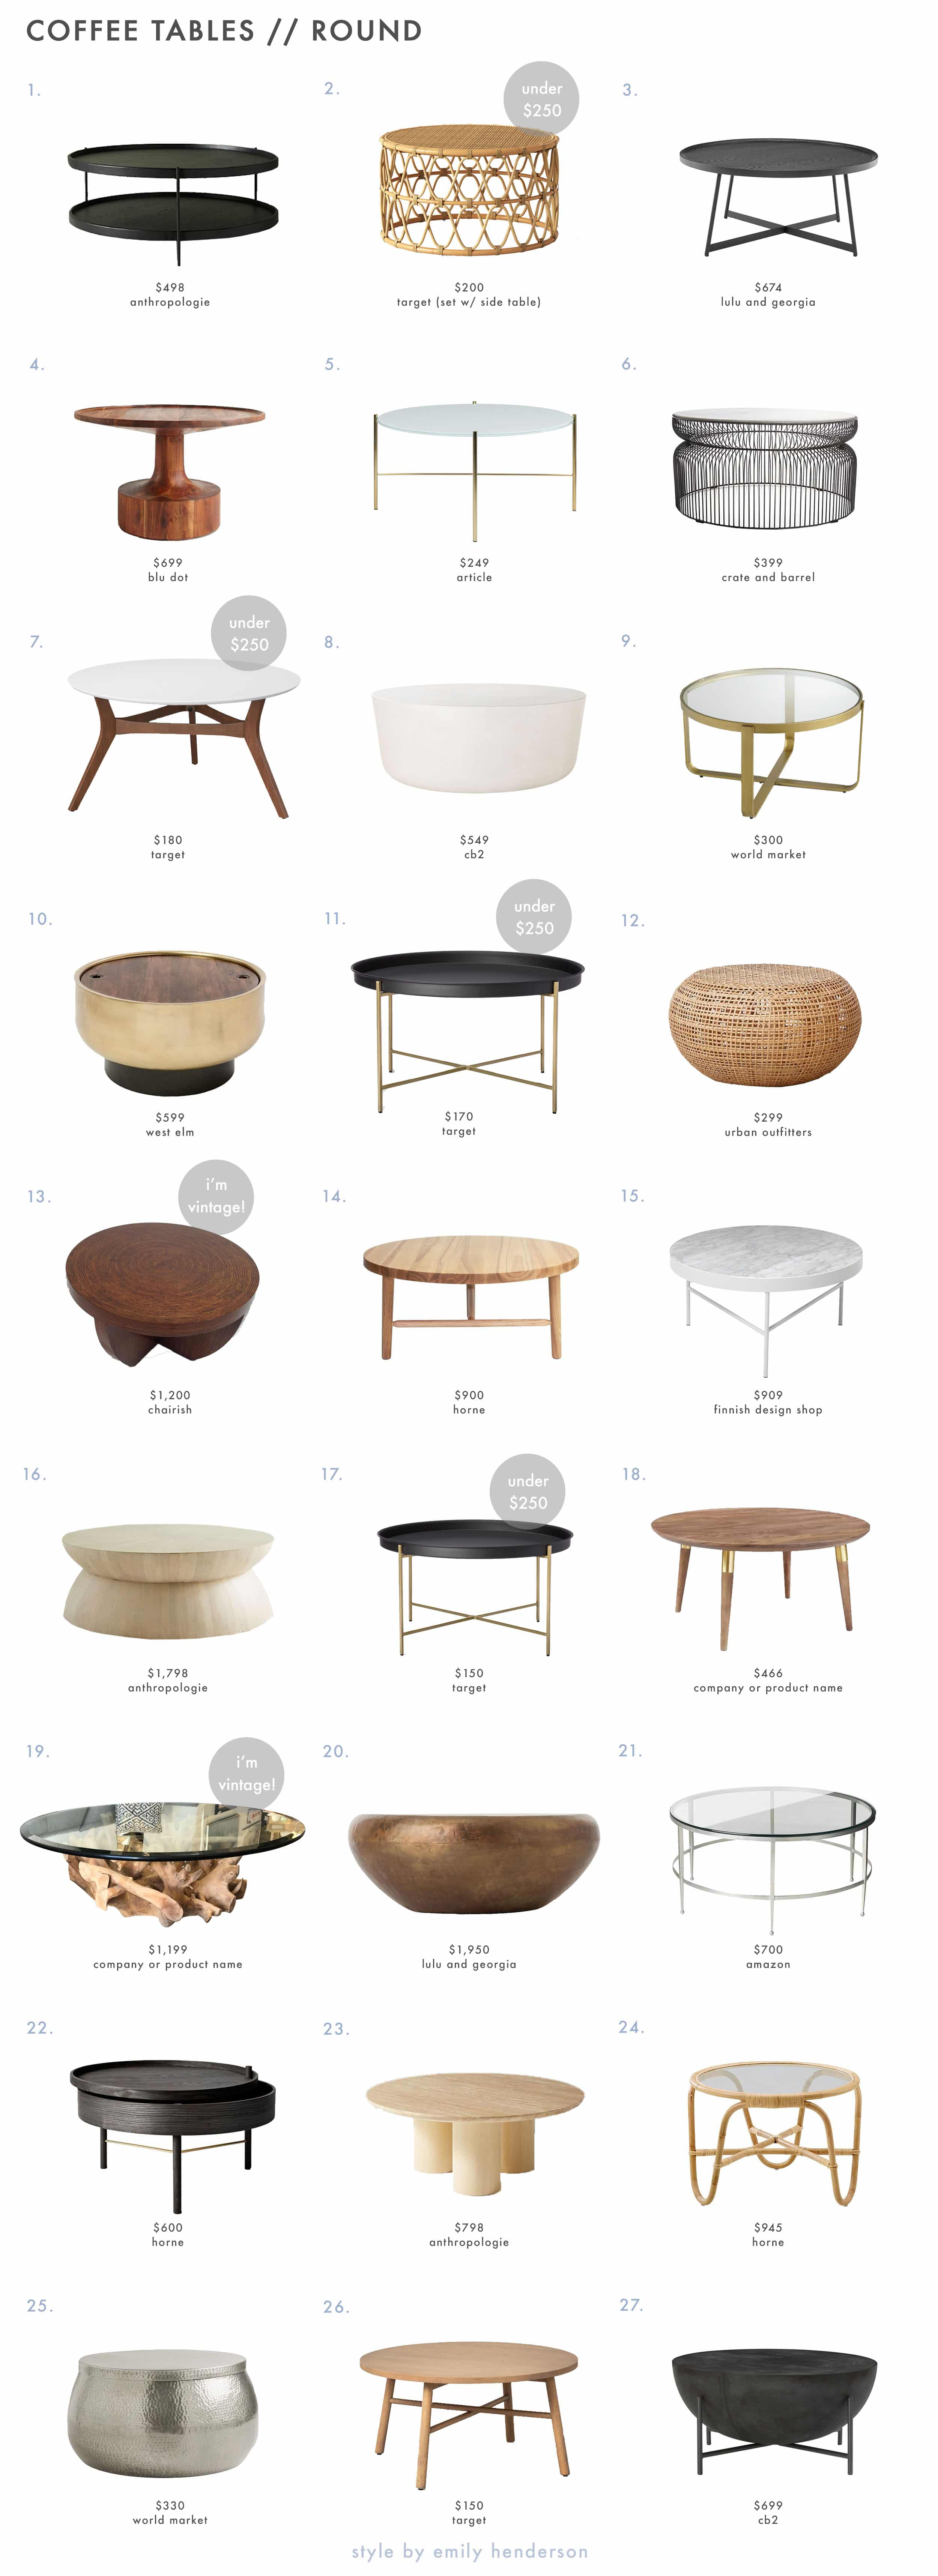 Rules For Picking A Coffee Table 105 Of Our Favorites For Every Space Emily Henderson